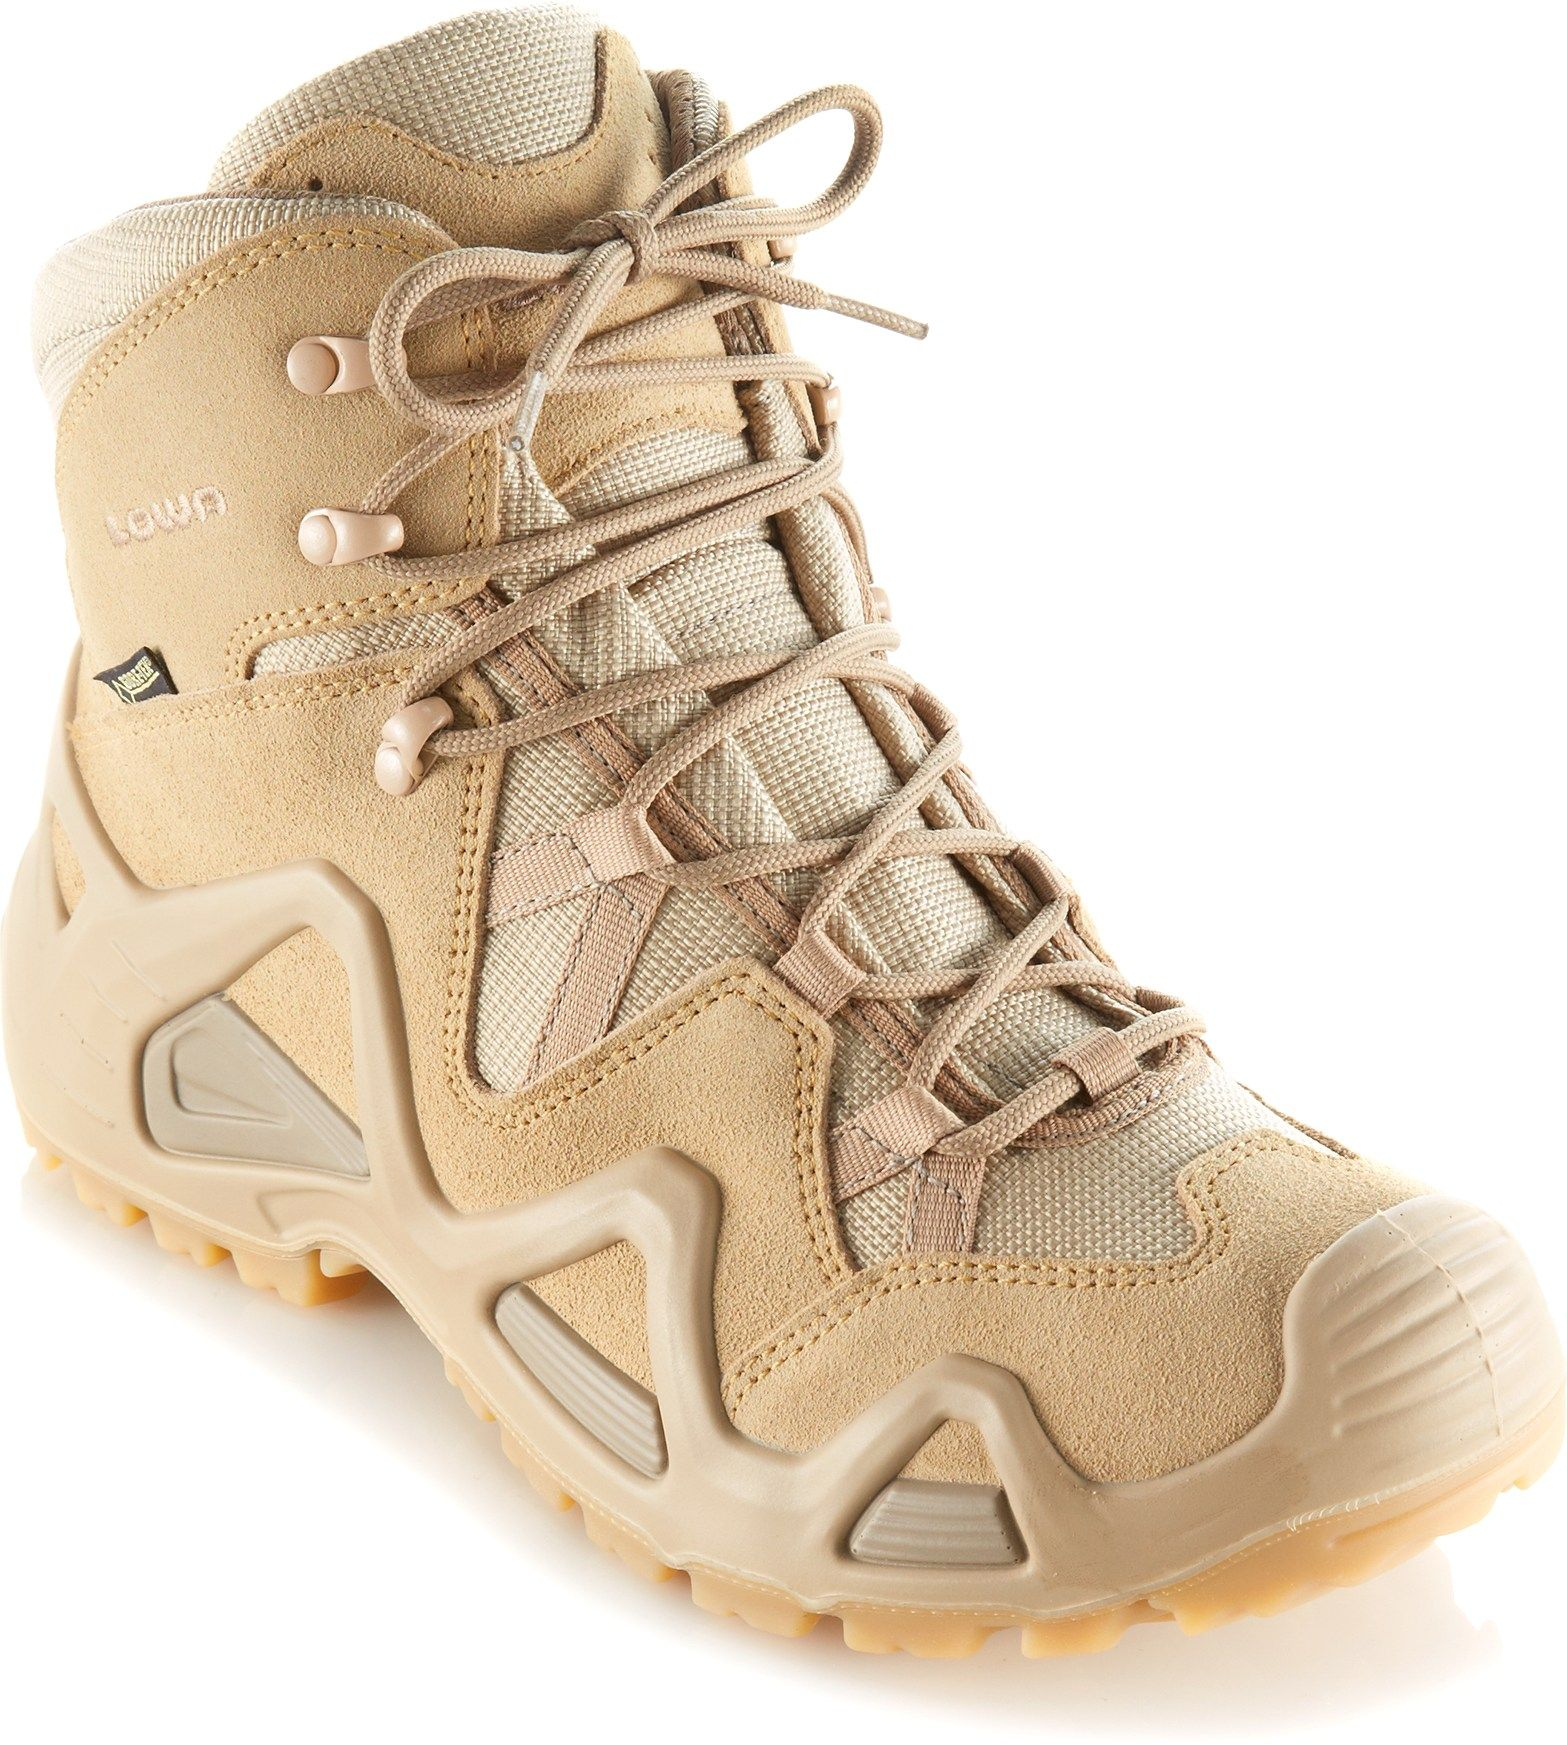 cc02edbe4f8 Zephyr GTX Mid TF Hiking Boots - Men's | Guns and Gear | Hiking ...